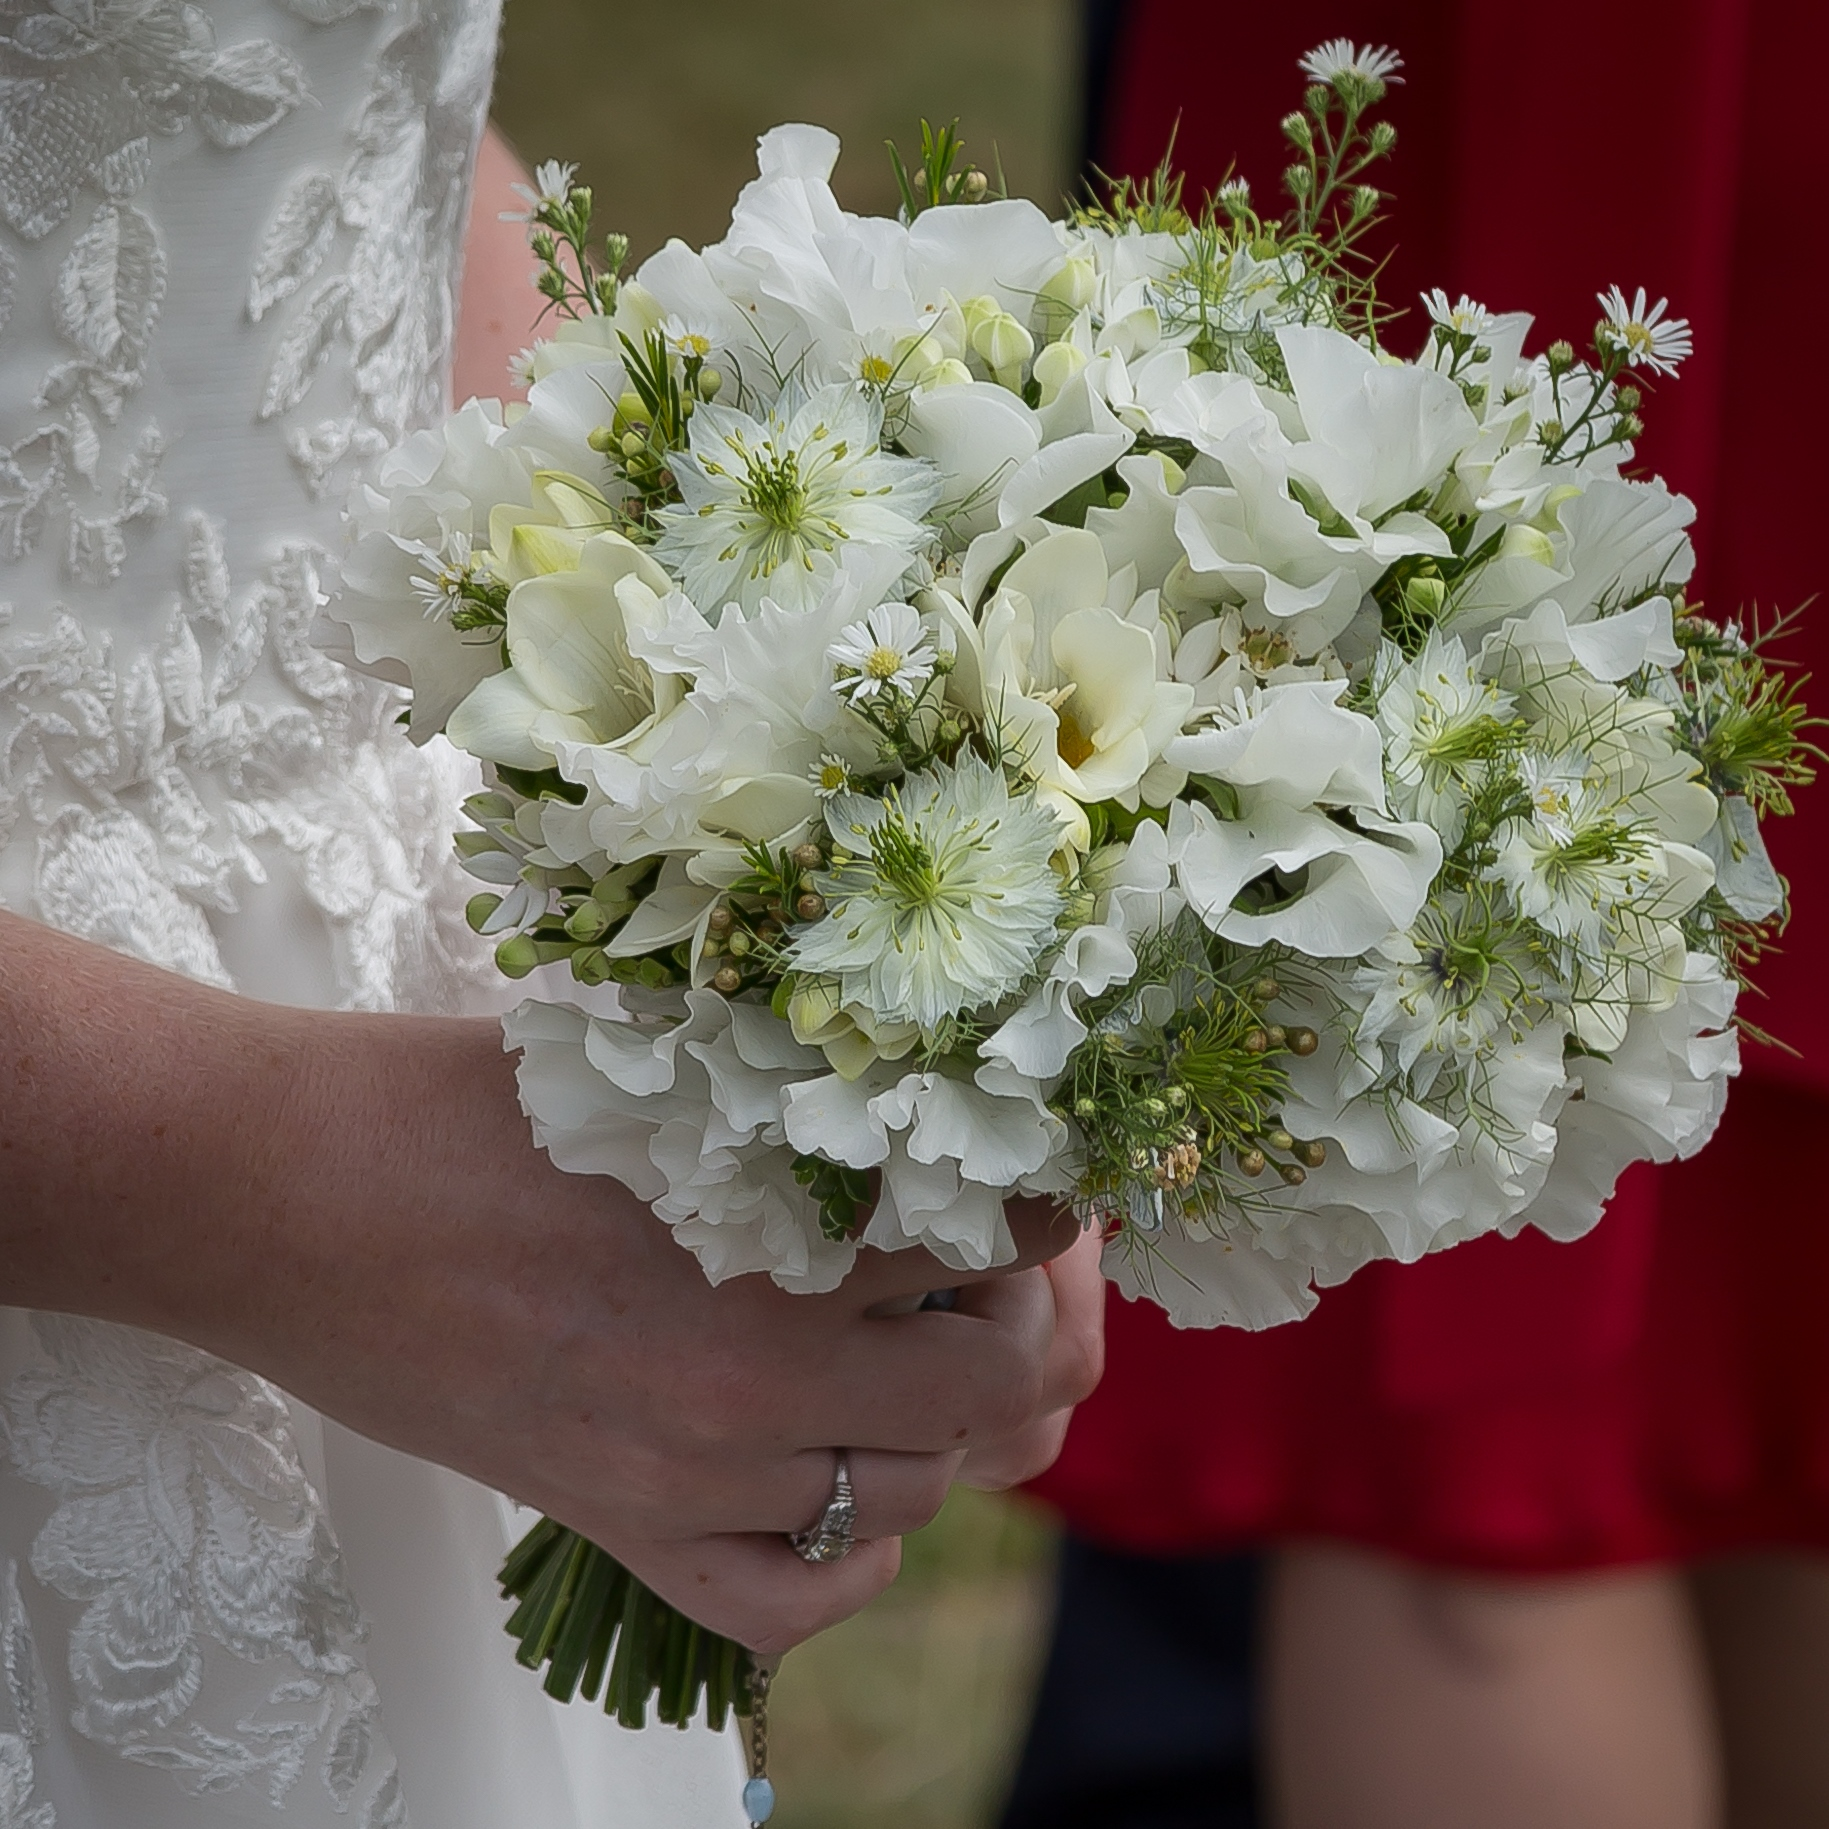 Bridal handtied wedding bouquets